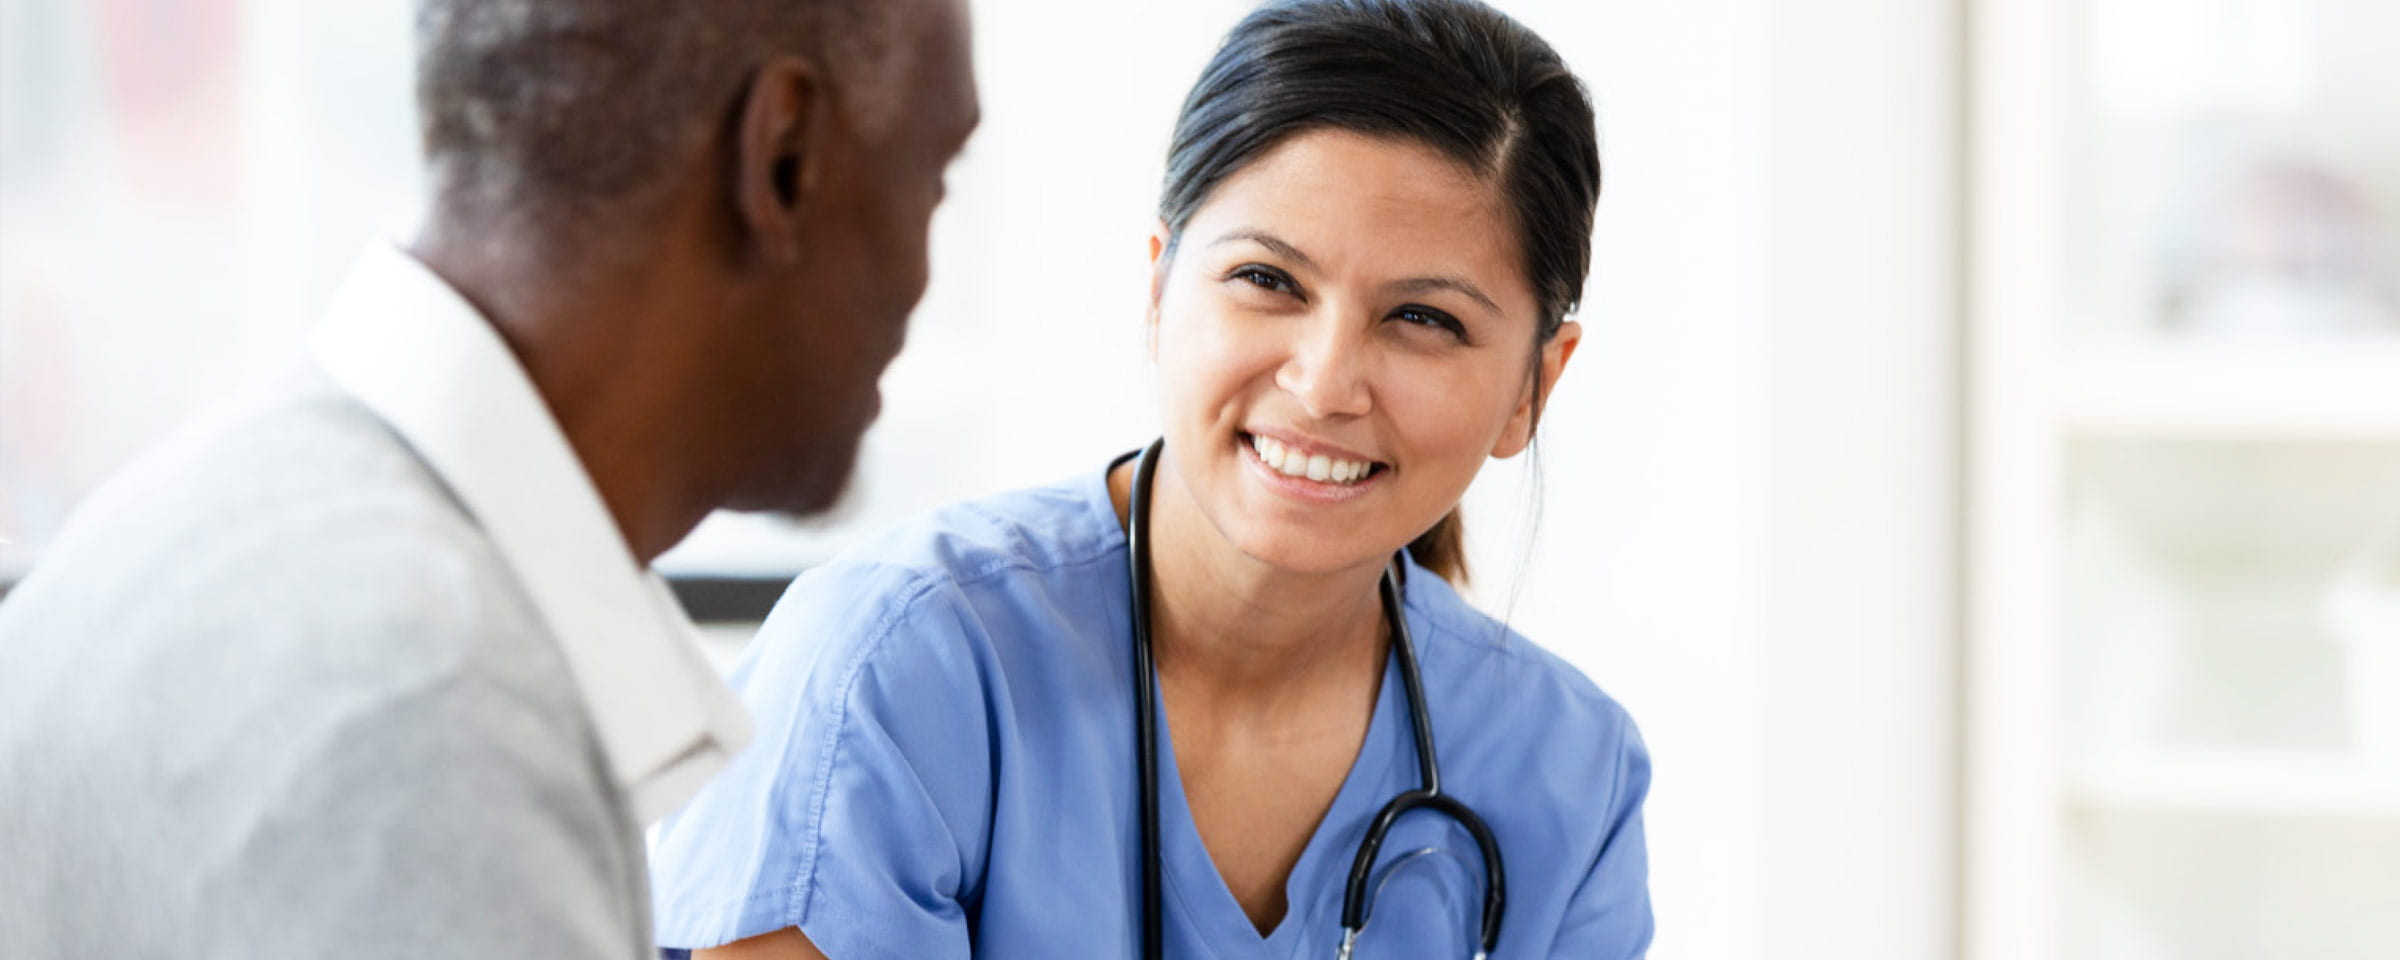 Female heath-care worker talking to male client.